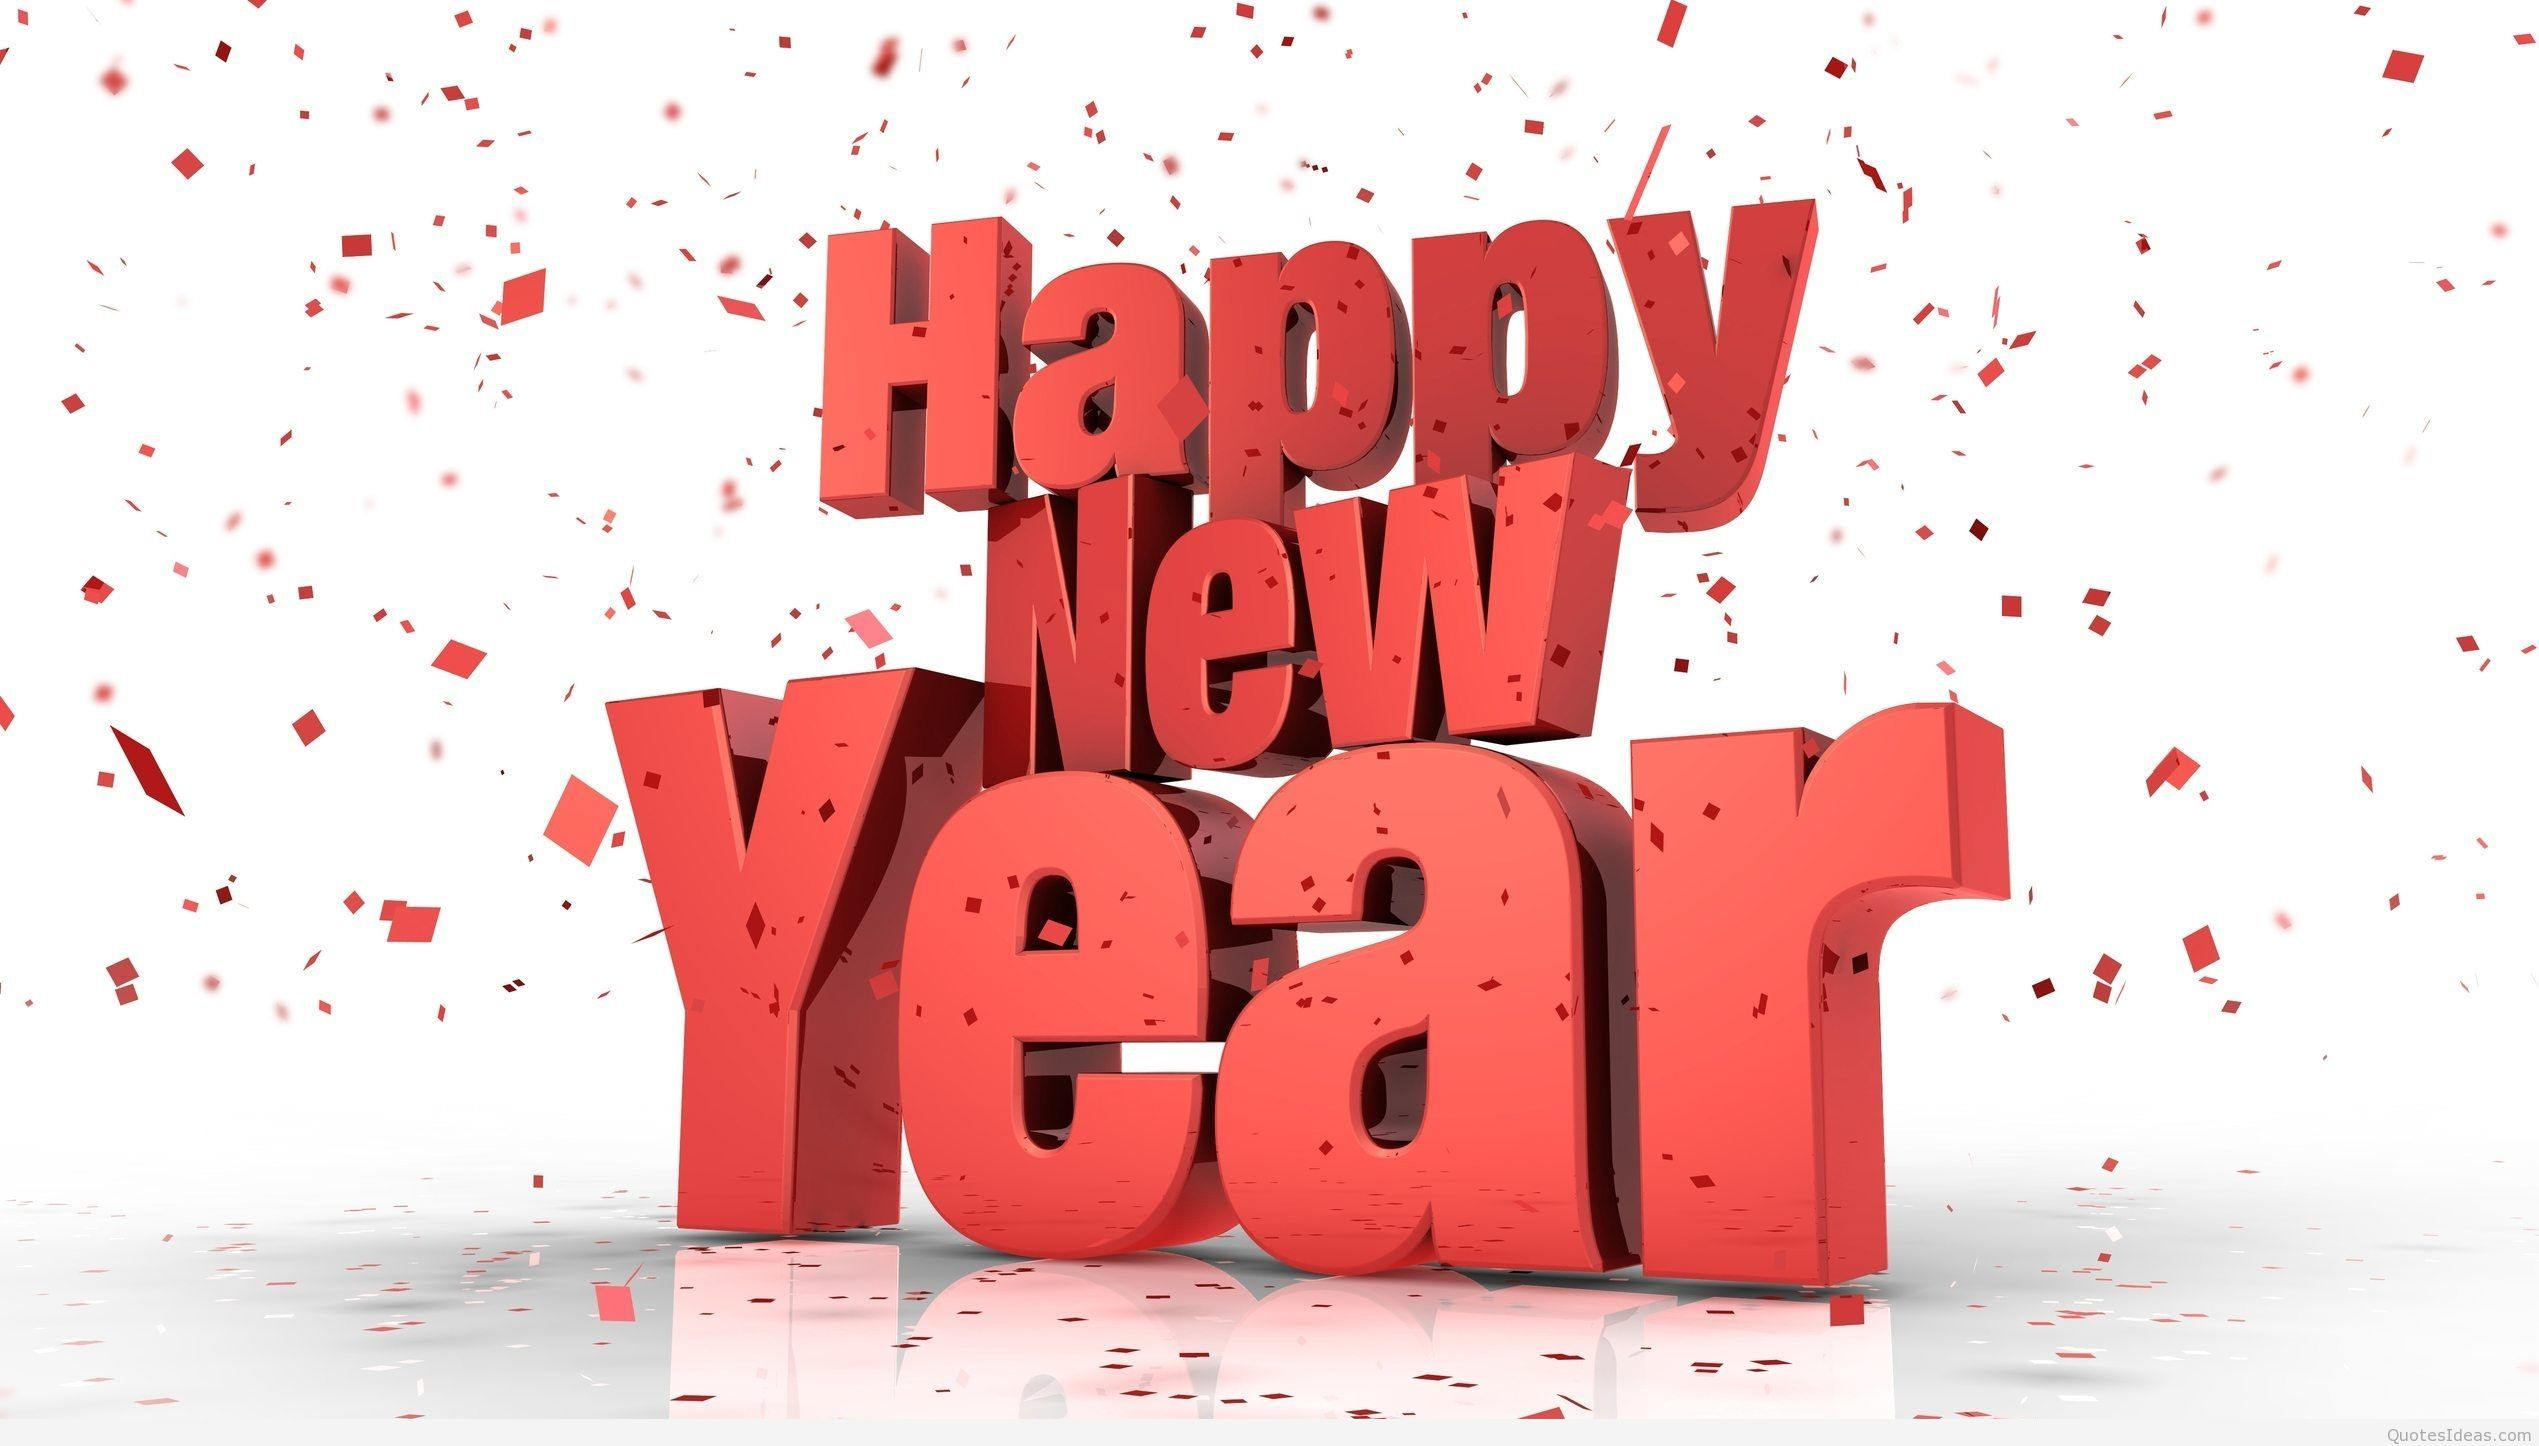 Happy New Year 2016 Images, Messages, Quotes, Whatsapp Status, Videos